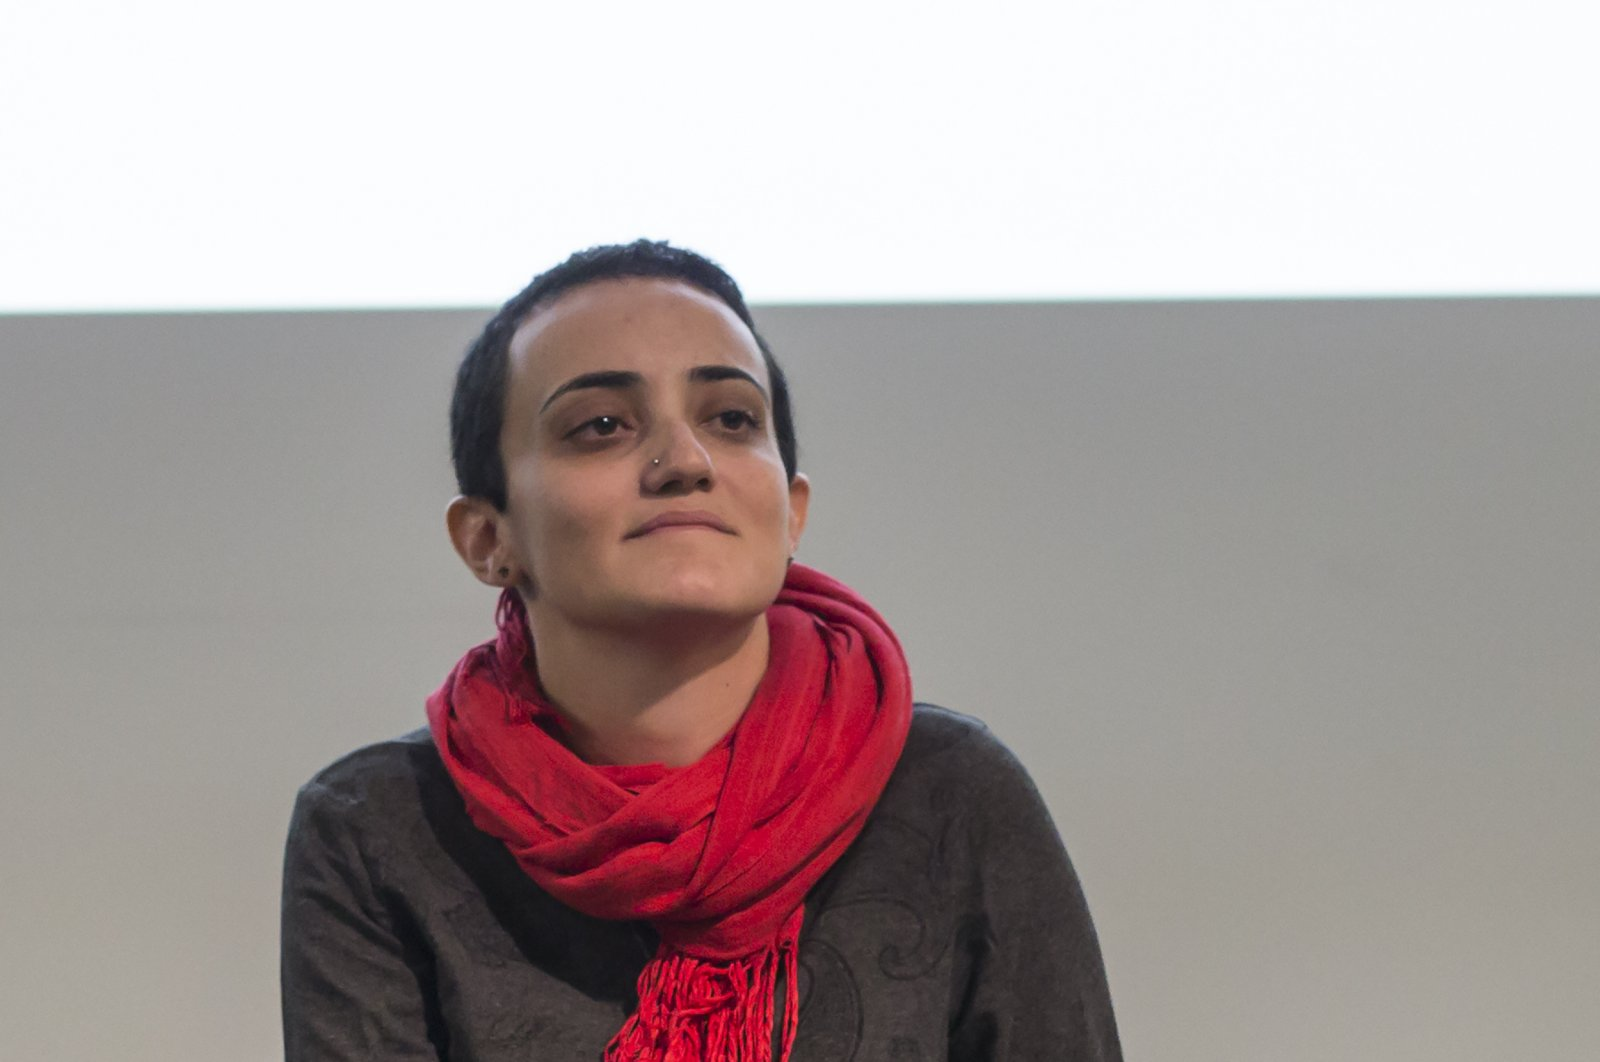 Lina Attalah, editor-in-chief of Mada Masr, a prominent investigative media outlet in Egypt, participates in a panel discussion at cultural center in Cairo, Egypt, Nov. 24, 2017. (AP Photo)